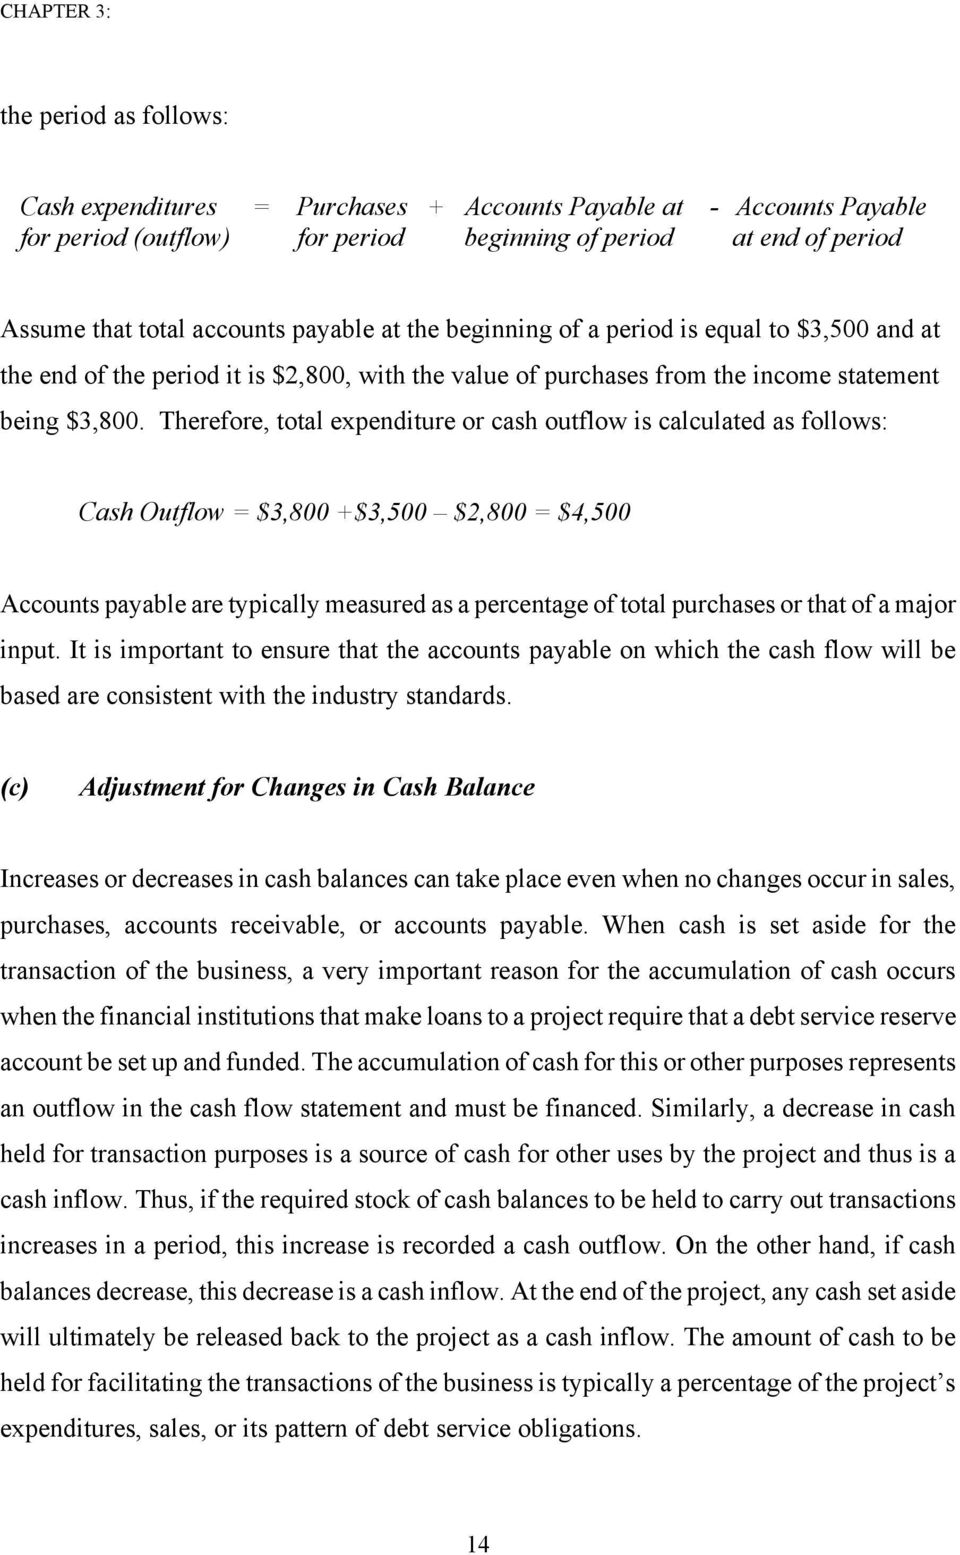 Therefore, oal expendiure or cash ouflow is calculaed as follows: Cash Ouflow = $3,800 +$3,500 $2,800 = $4,500 Accouns payable are ypically measured as a percenage of oal purchases or ha of a major